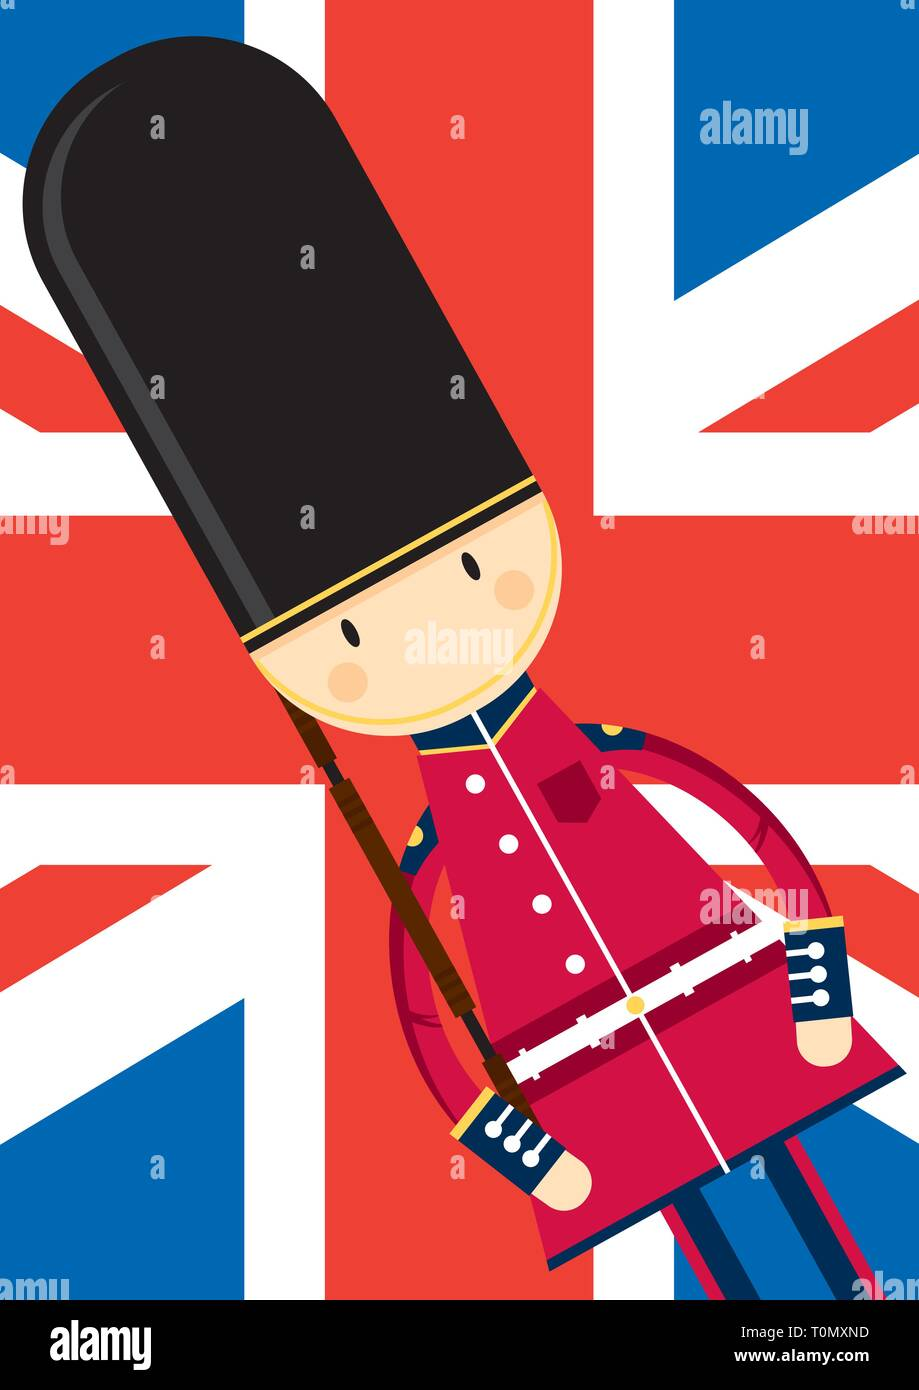 Cute Cartoon British Queen's Palace Guard on a Union Jack Background - Stock Vector